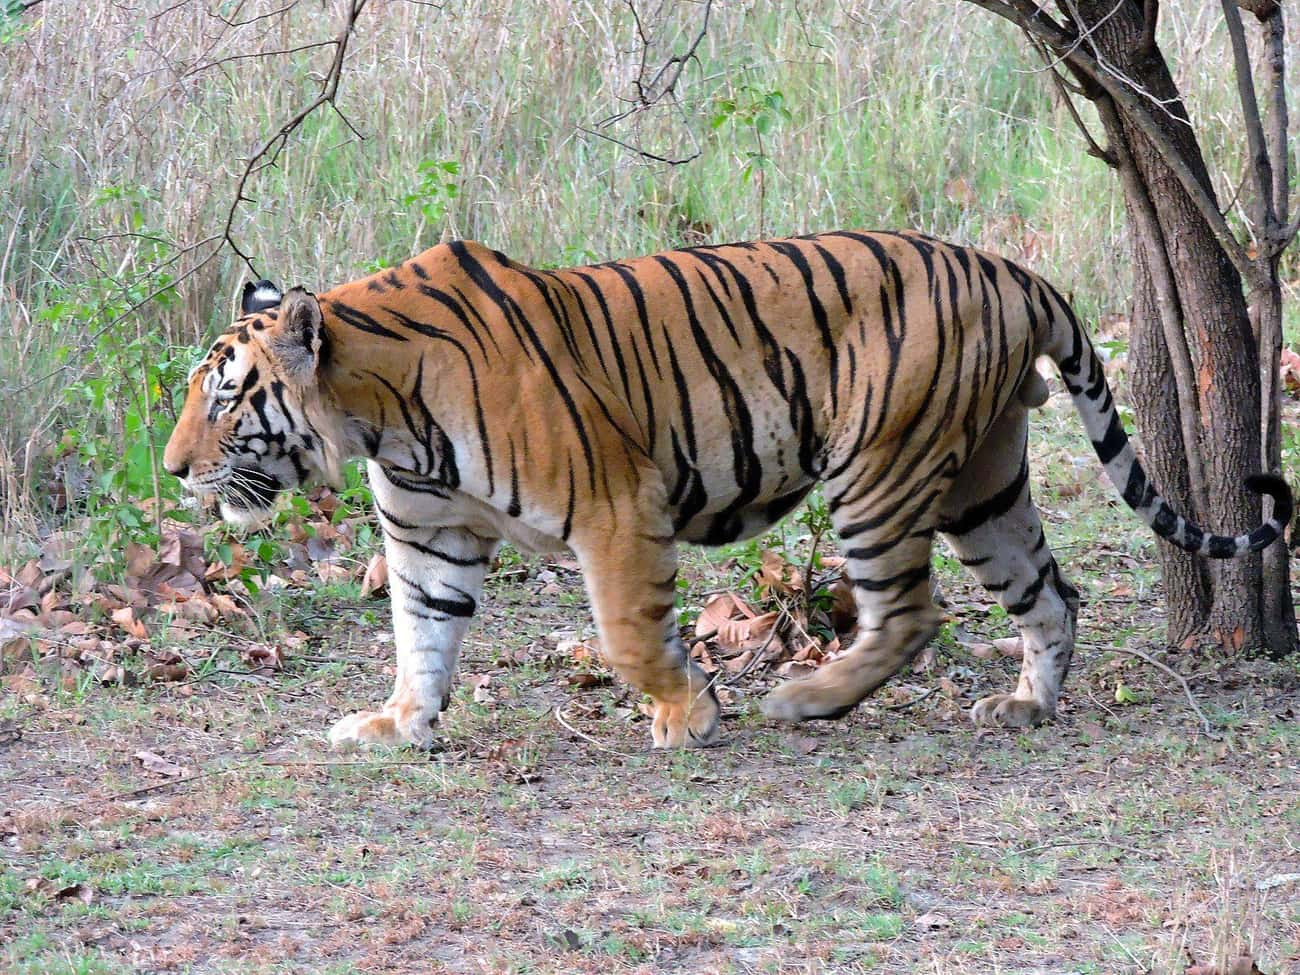 One Tiger Came To An Indian Zo is listed (or ranked) 4 on the list The Wildest Zoo Animal Escapes Of All Time